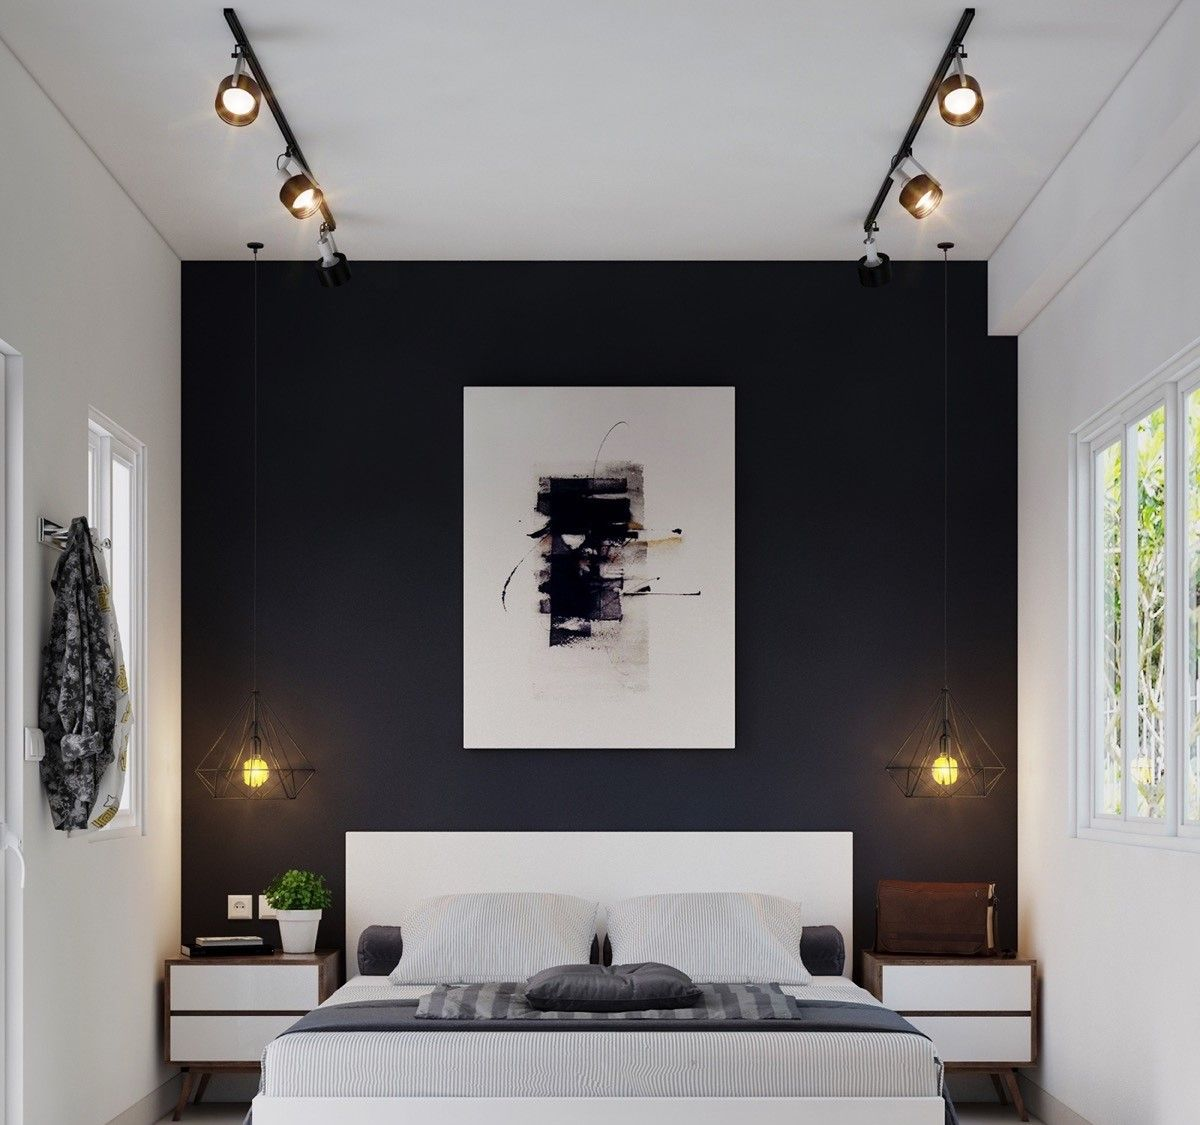 غرف نوم مودرن ابيض و اسود Black White Bedrooms Black Walls Bedroom Bedroom Design